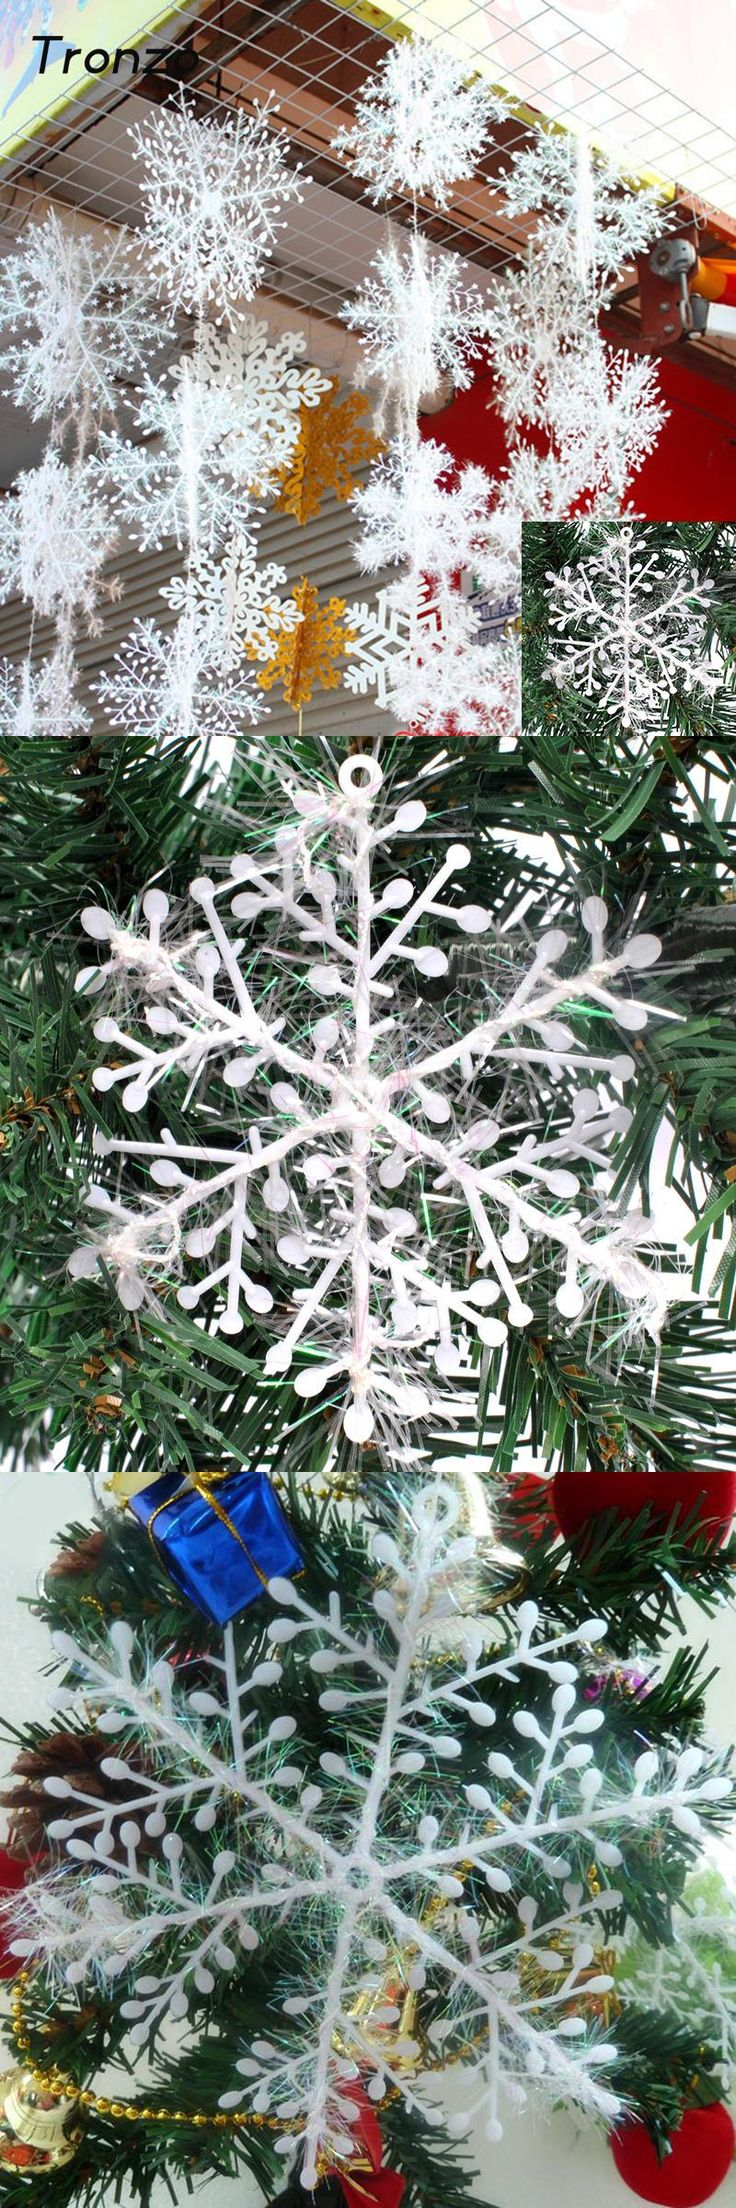 [Visit to Buy] Tronzo Christmas Tree Decorations Snowflakes 30pcs 6cm White Plastic Artificial Snow Christmas Decorations for Home Navidad #Advertisement